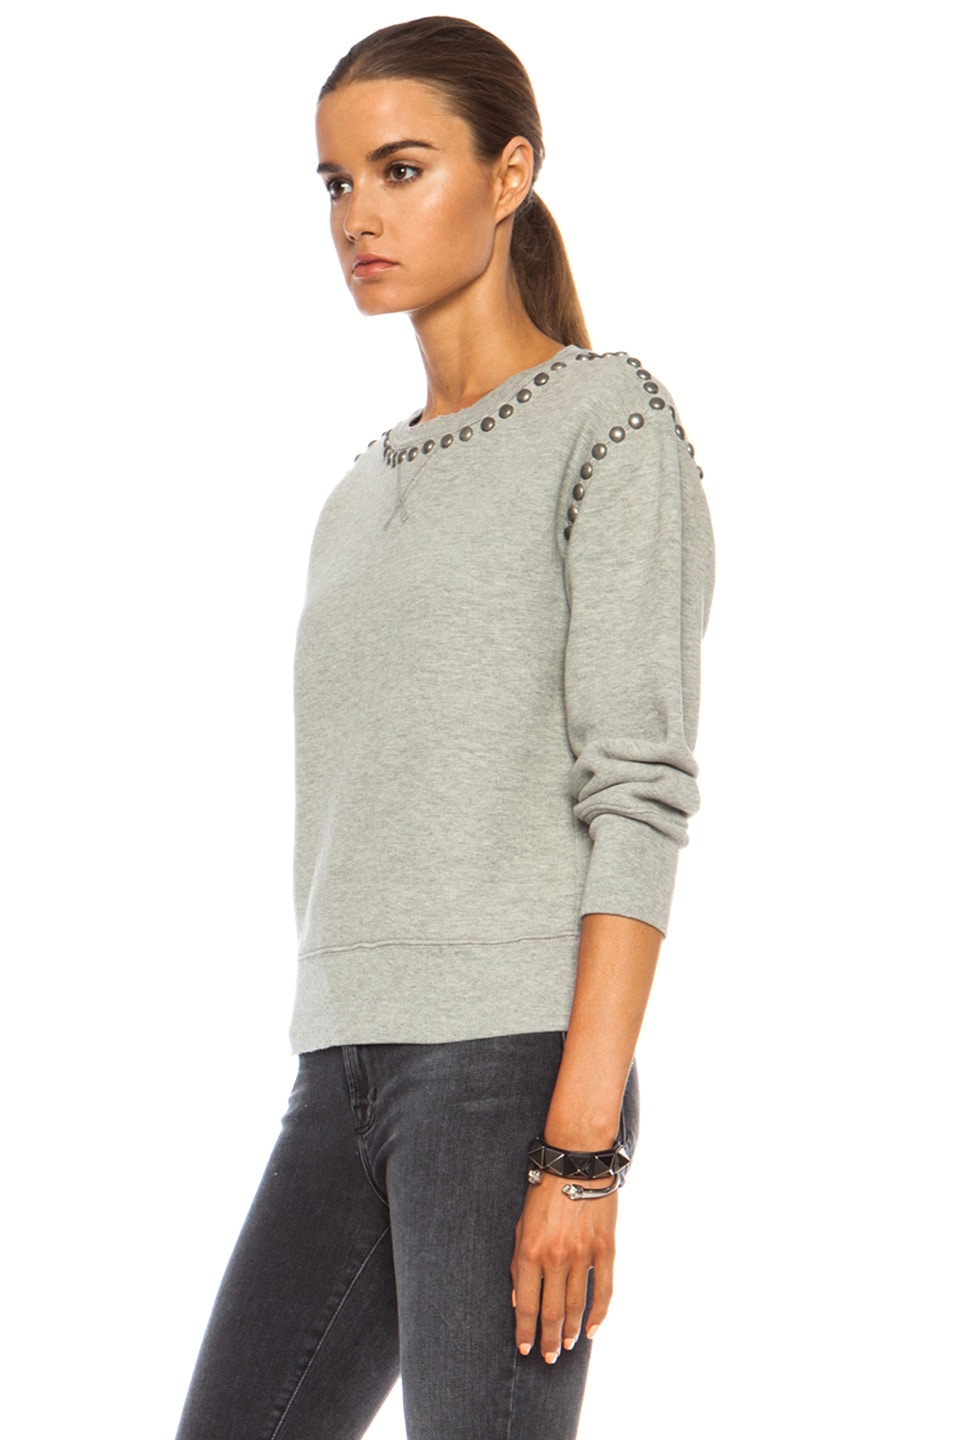 Image 2 of Citizens of Humanity Premium Vintage Camryn Sweatshirt in Studded Heather